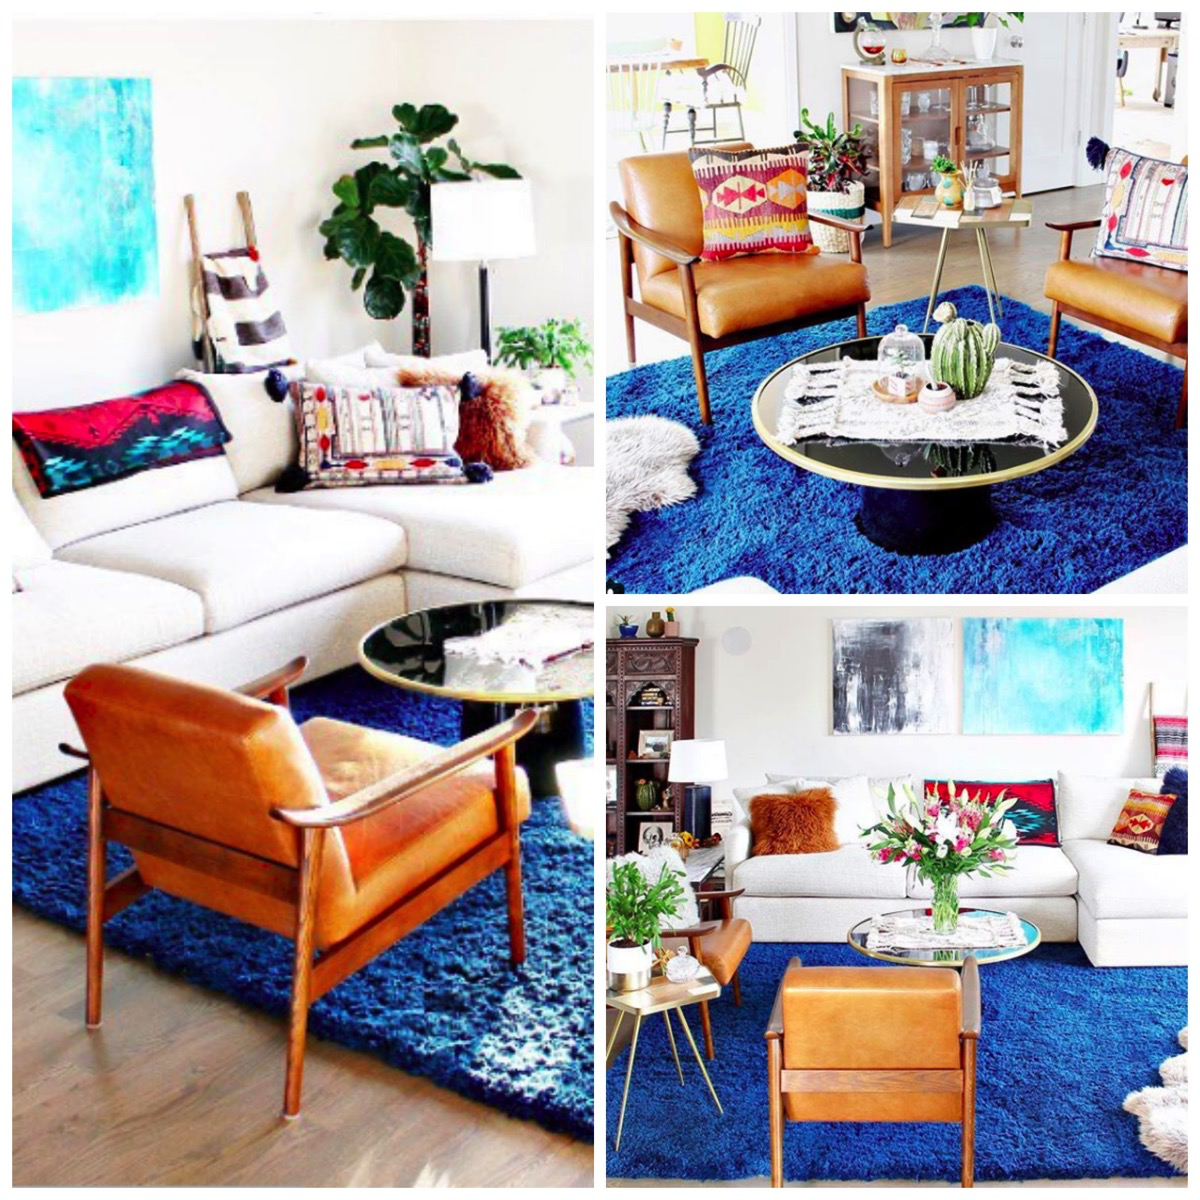 Home Tour: Madison's Dreamy Desert Home, He Is An Interior Design and Founder of The Space and Habit Blog